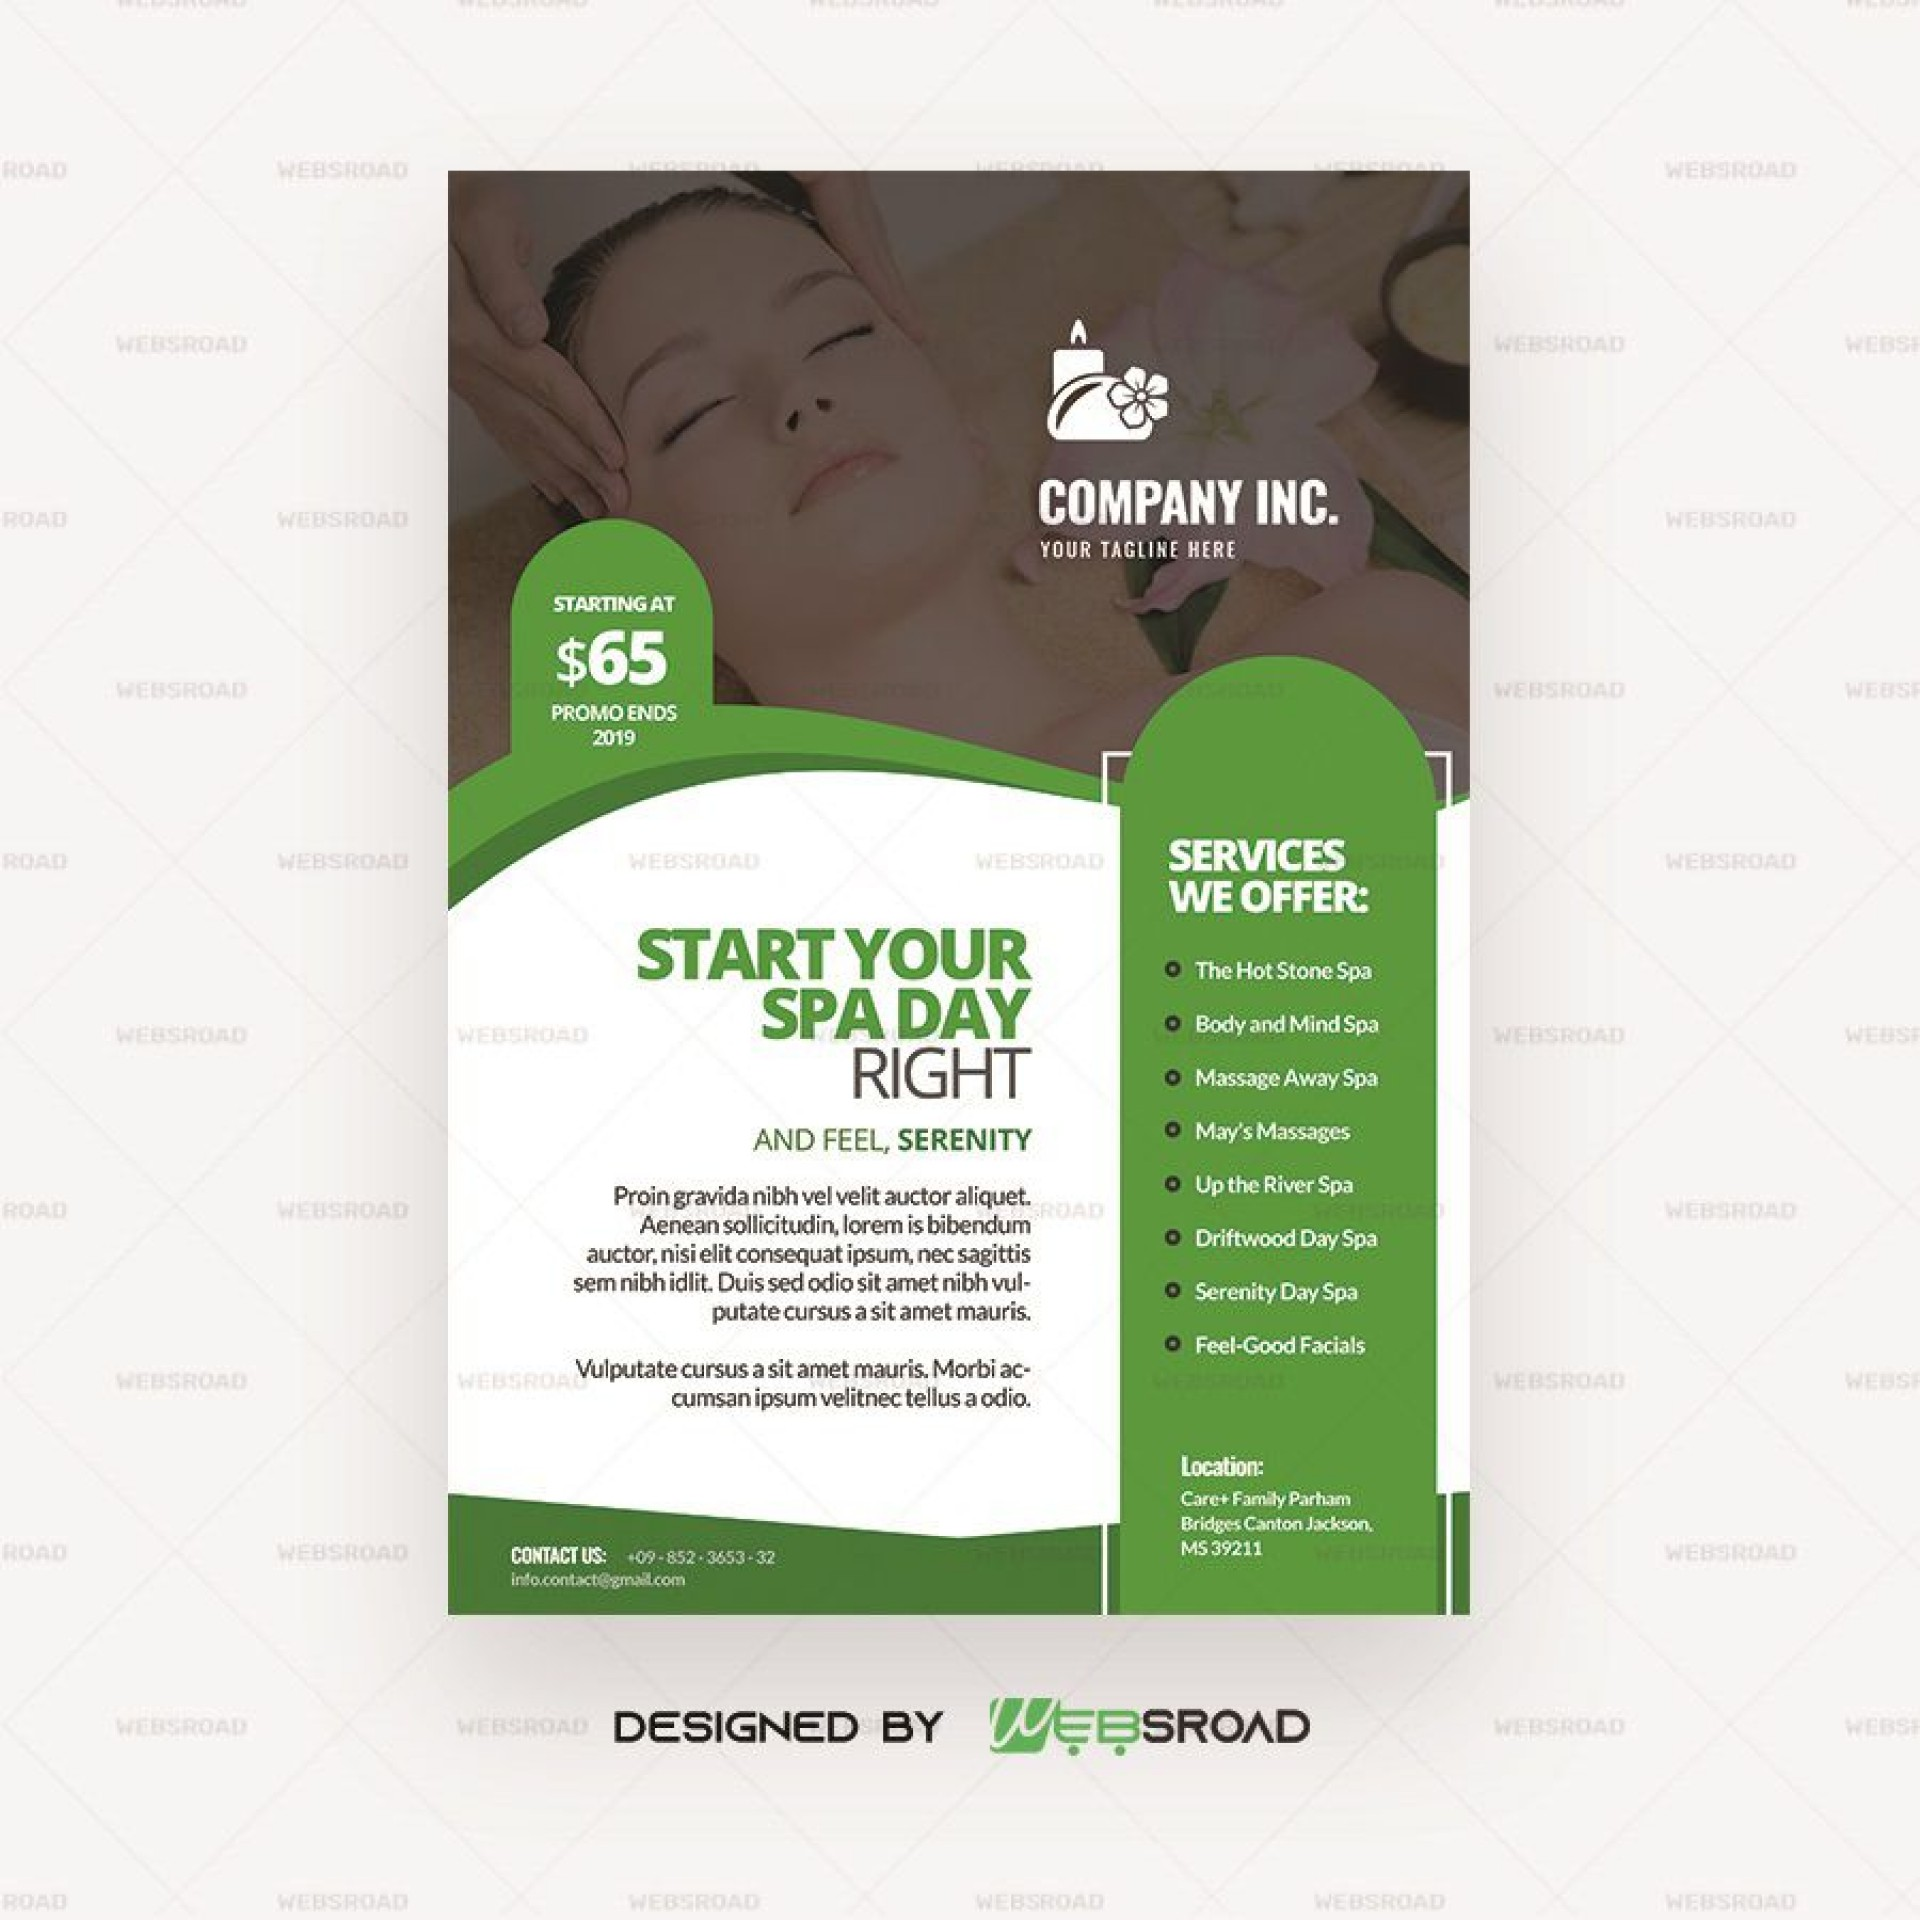 006 Unforgettable Free Download Flyer Template High Def  Photoshop For Microsoft Word Downloadable Publisher1920